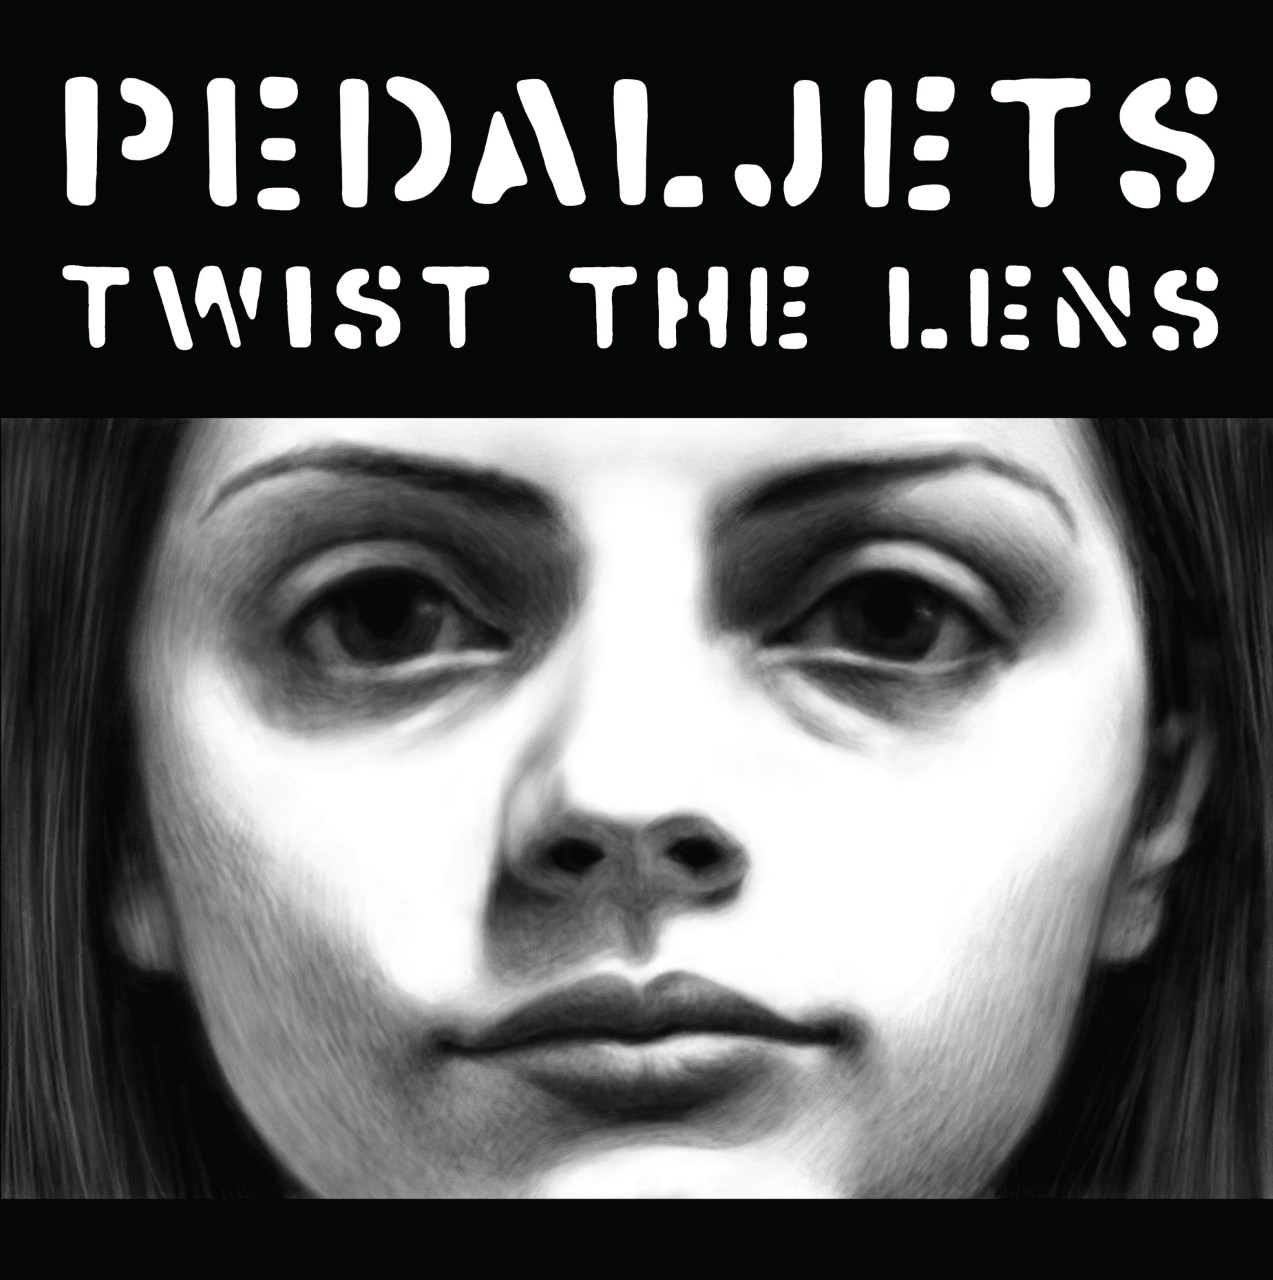 Pedaljets Twist The Lens Cover